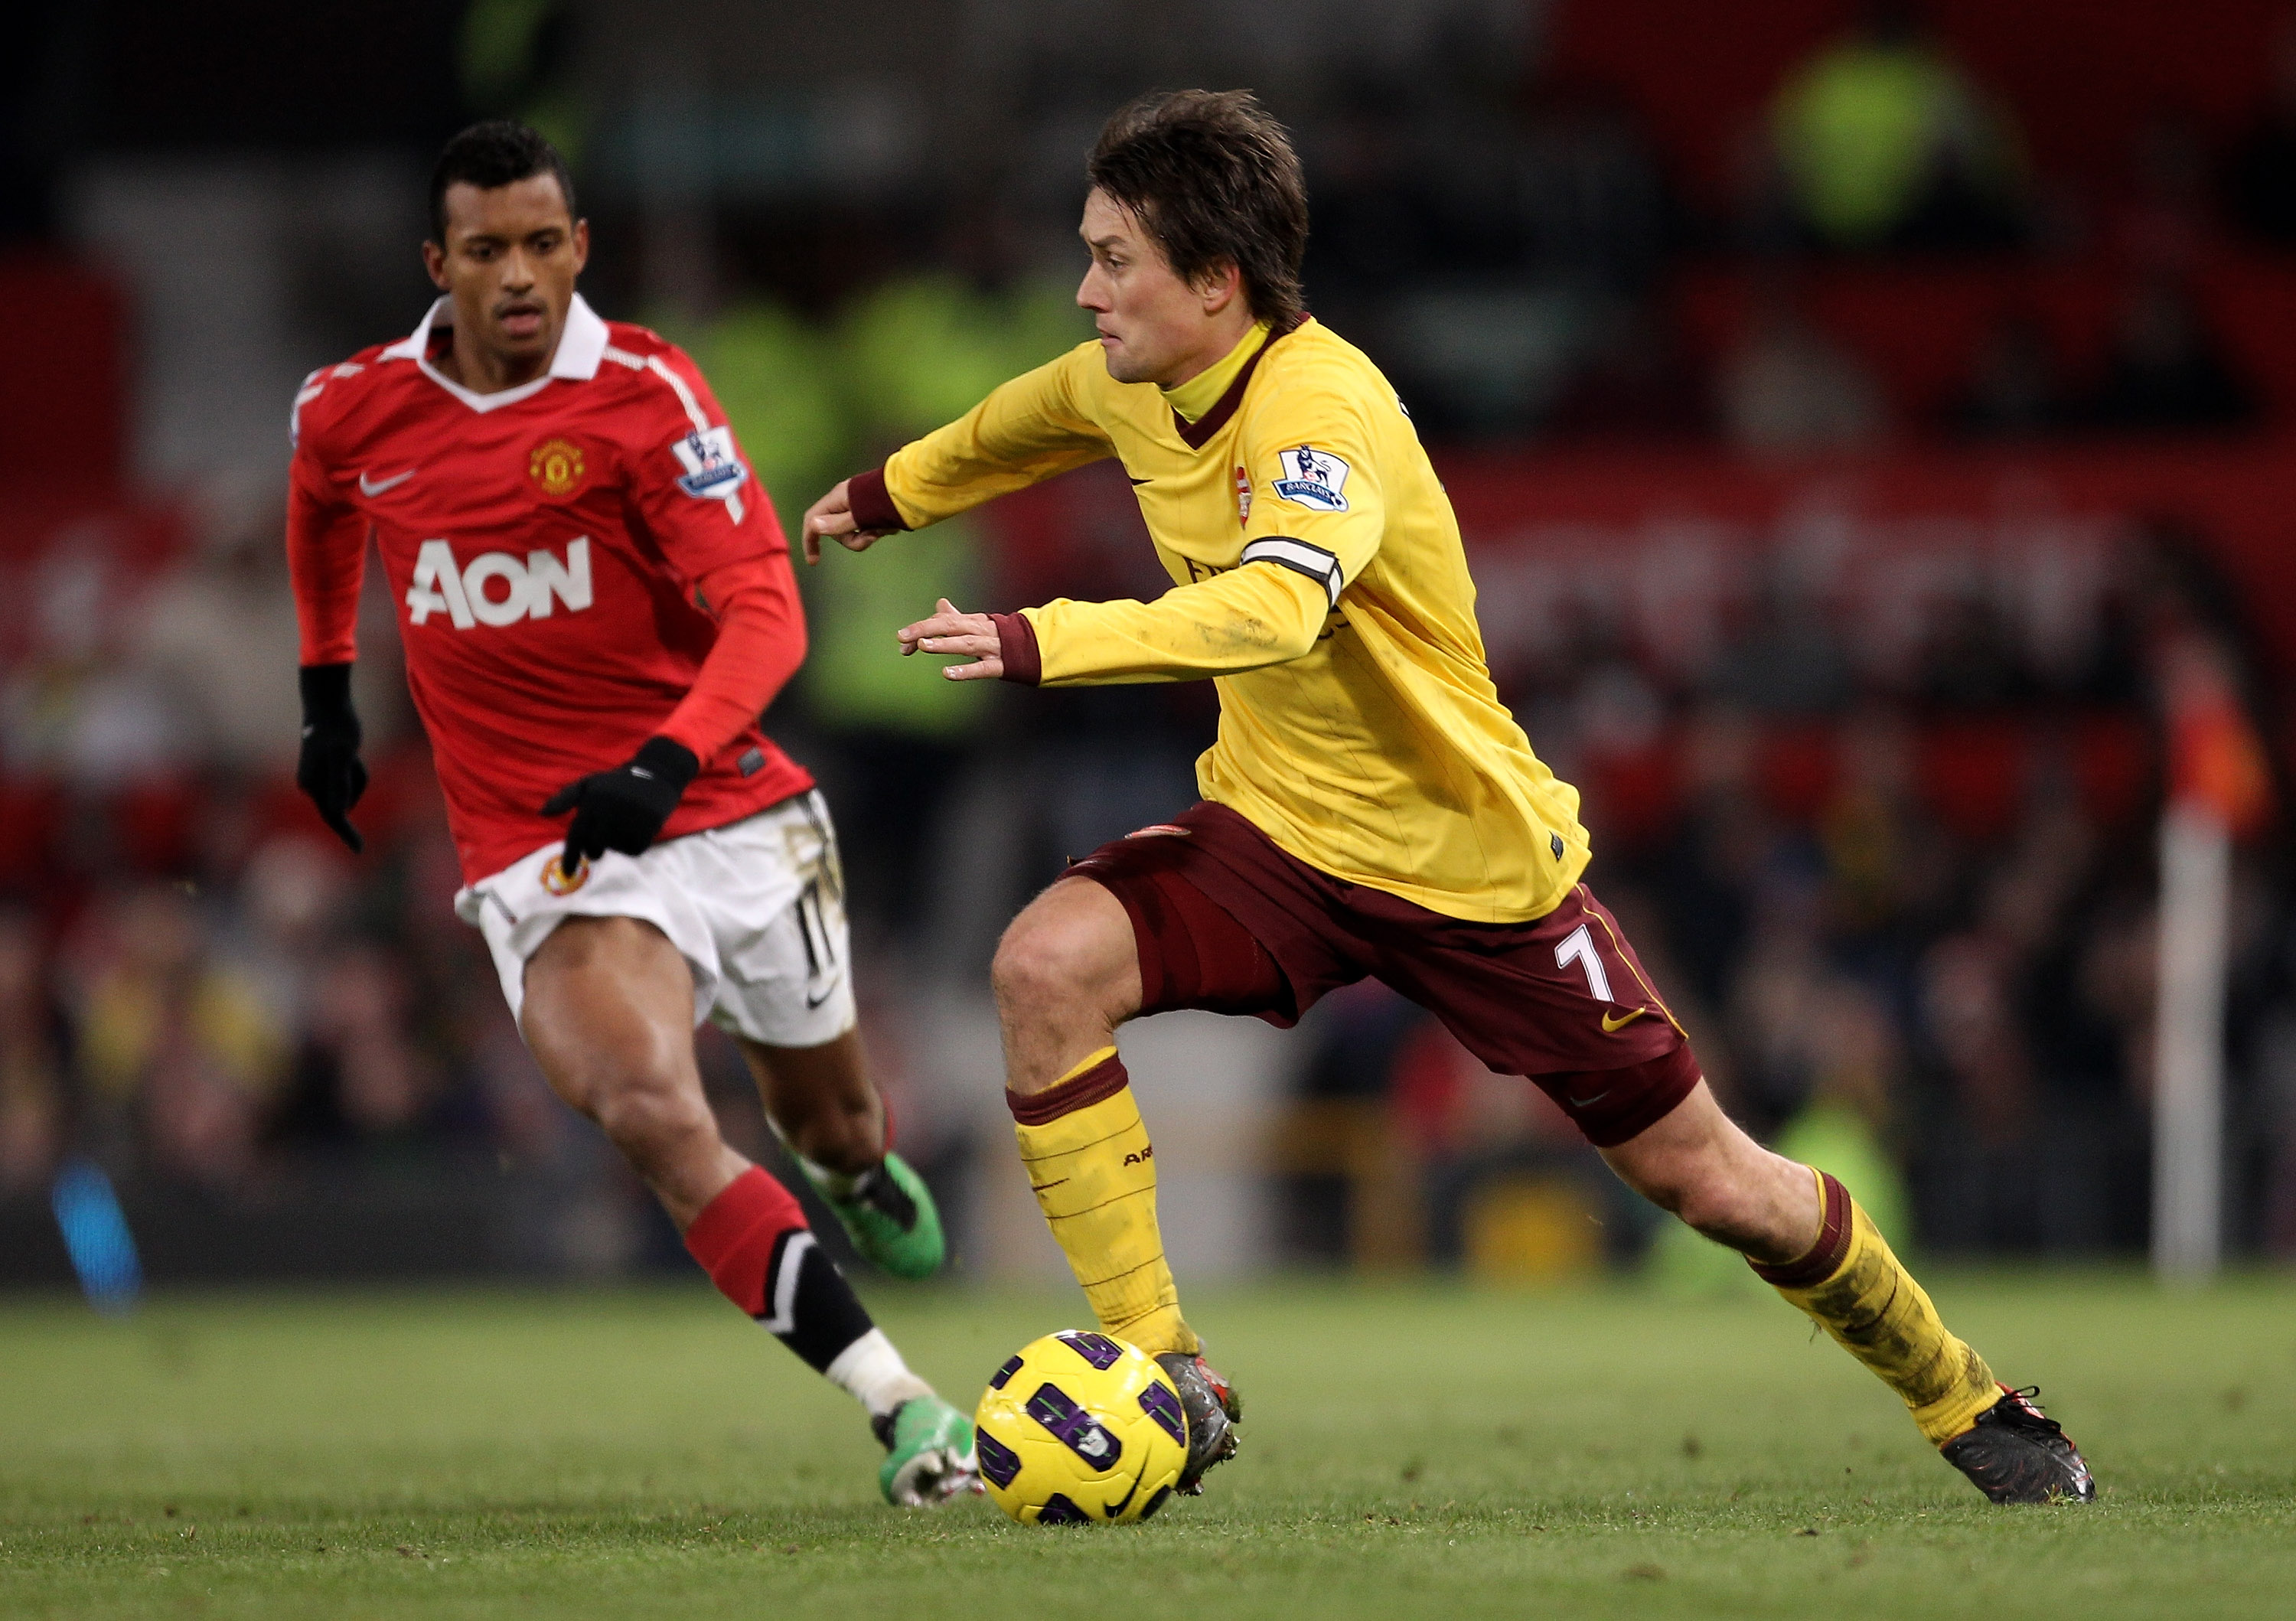 MANCHESTER, ENGLAND - DECEMBER 13:  Tomas Rosicky of Arsenal is pursued by Nani of Manchester United during the Barclays Premier League match between Manchester United and Arsenal at Old Trafford on December 13, 2010 in Manchester, England.  (Photo by Ale